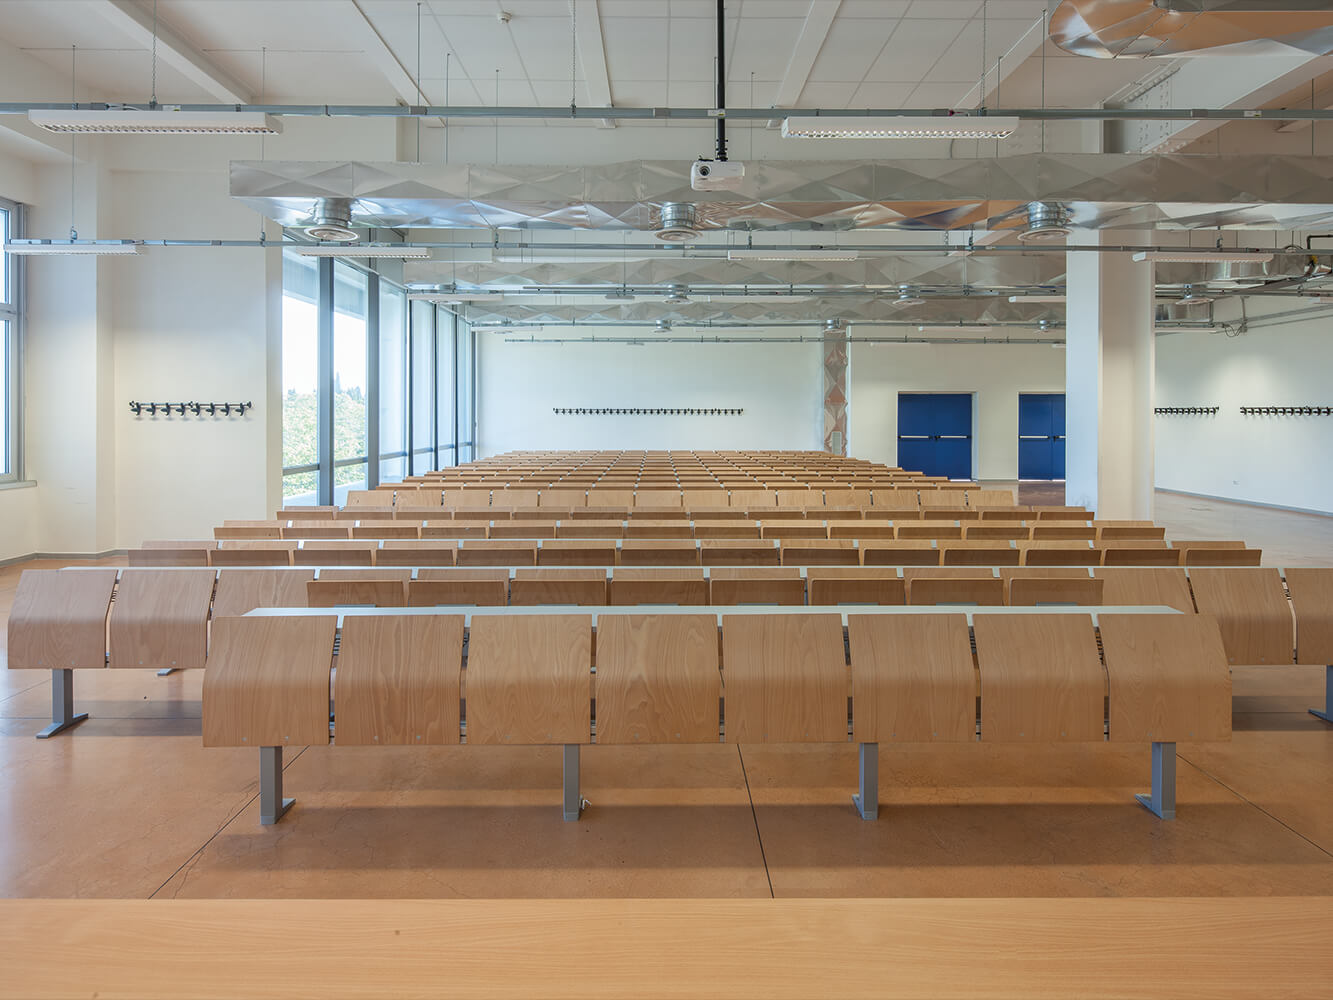 Sapienza University - E4000 study bench by LAMM